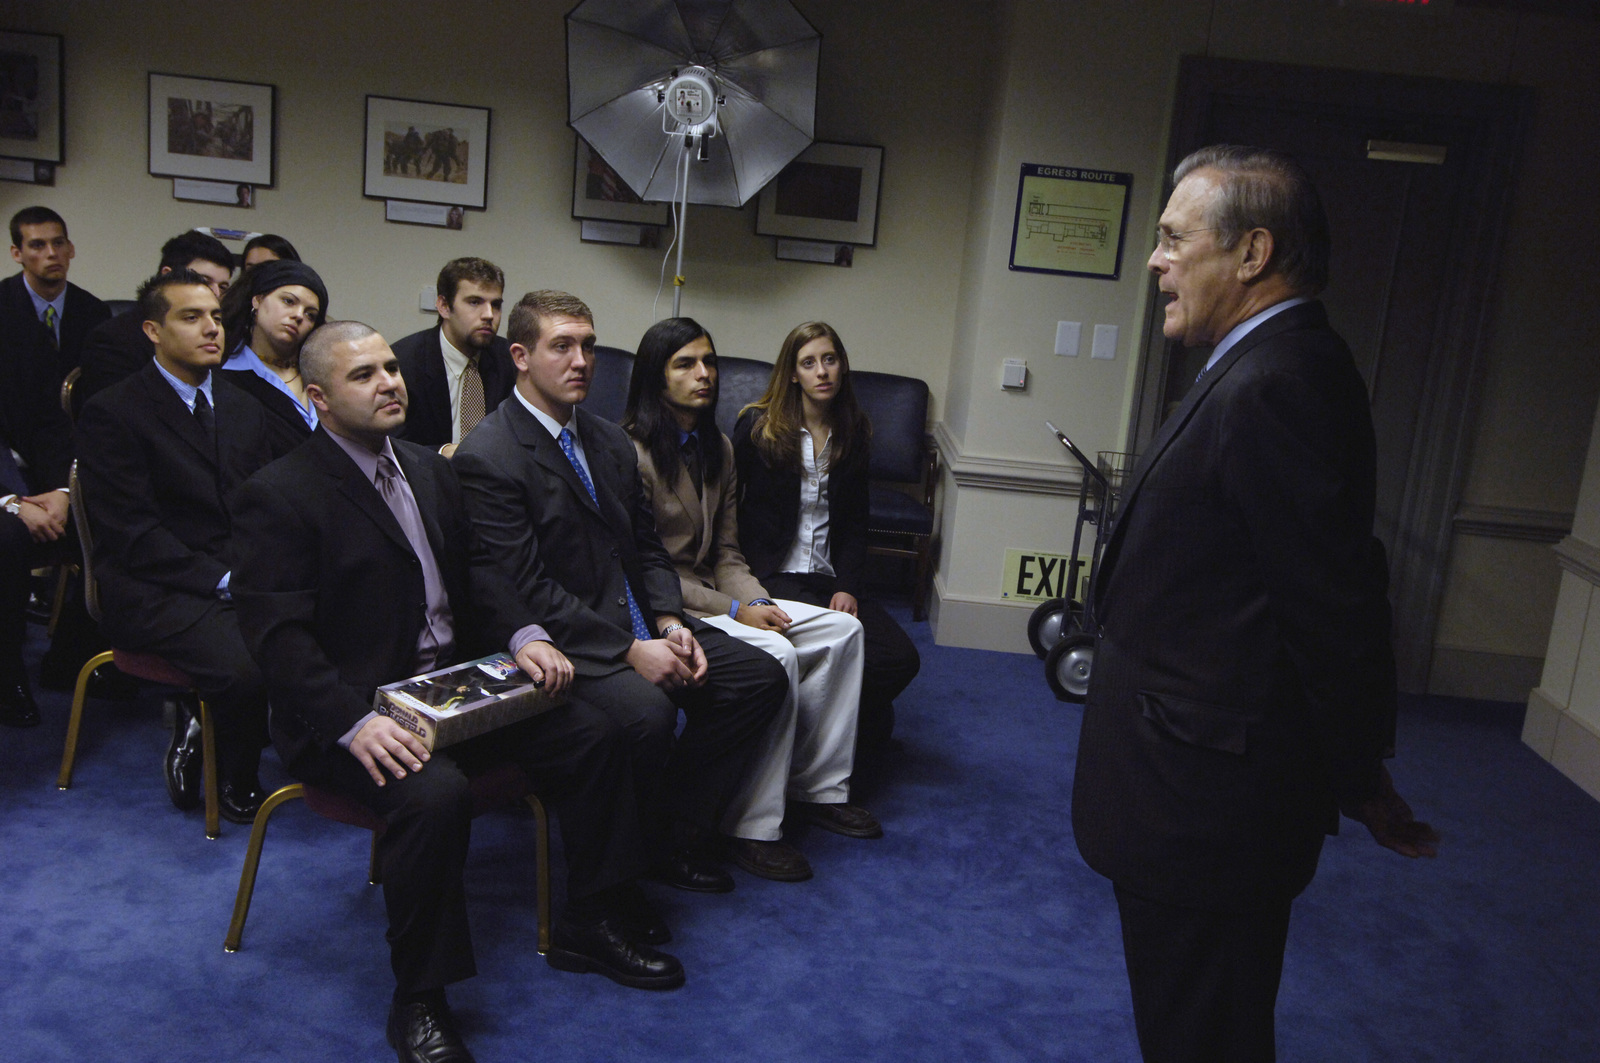 "The Honorable Donald H. Rumsfeld (right), U.S. Secretary of Defense (SECDEF), speaks to political science students from Whittier College, Calif., at the Pentagon, Washington, D.C., Jan. 30, 2006.  The students are on a weeklong visit to the area to culminate a course entitled,""Nixon's Complex Legacy.""The SECDEF gave his perspective from his time in the Nixon Administration as Director of Economic Opportunity and as the Chairman of the Gerald R. Ford Transition to Presidency in 1974.  (DoD photo by PETTY Officer 1ST Class Chad J. McNeeley) (Released)"